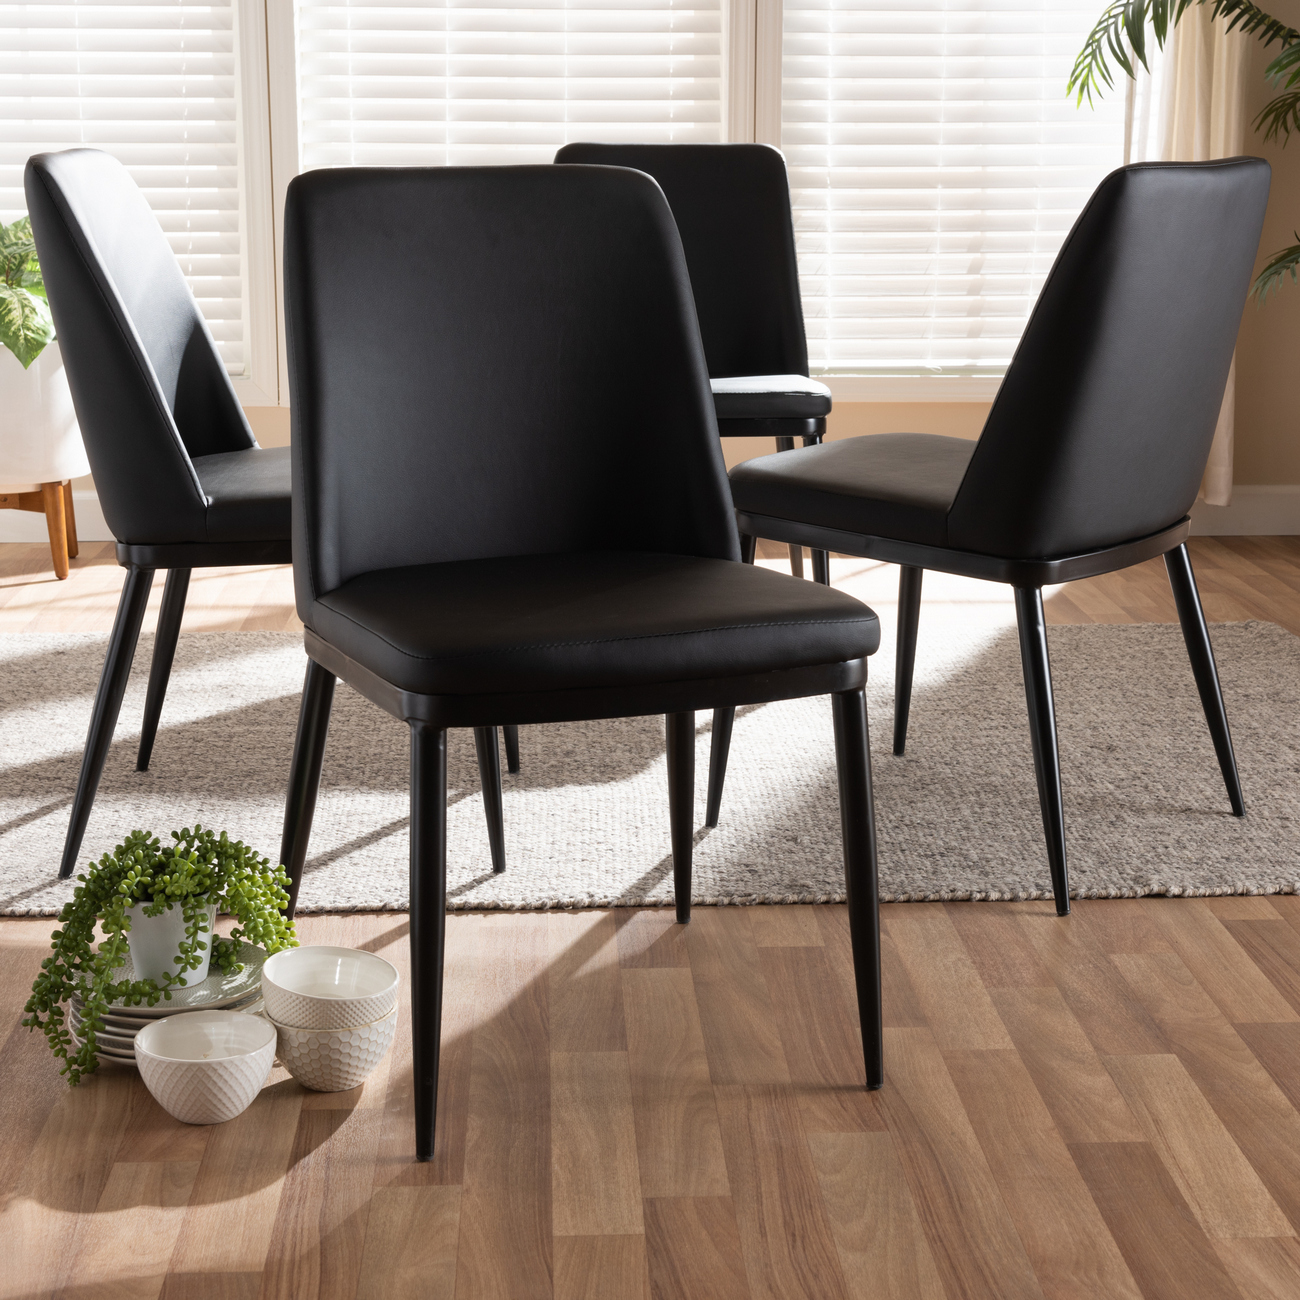 Wholesale Interiors Darcell Modern Contemporary Black Faux Leather Upholstered